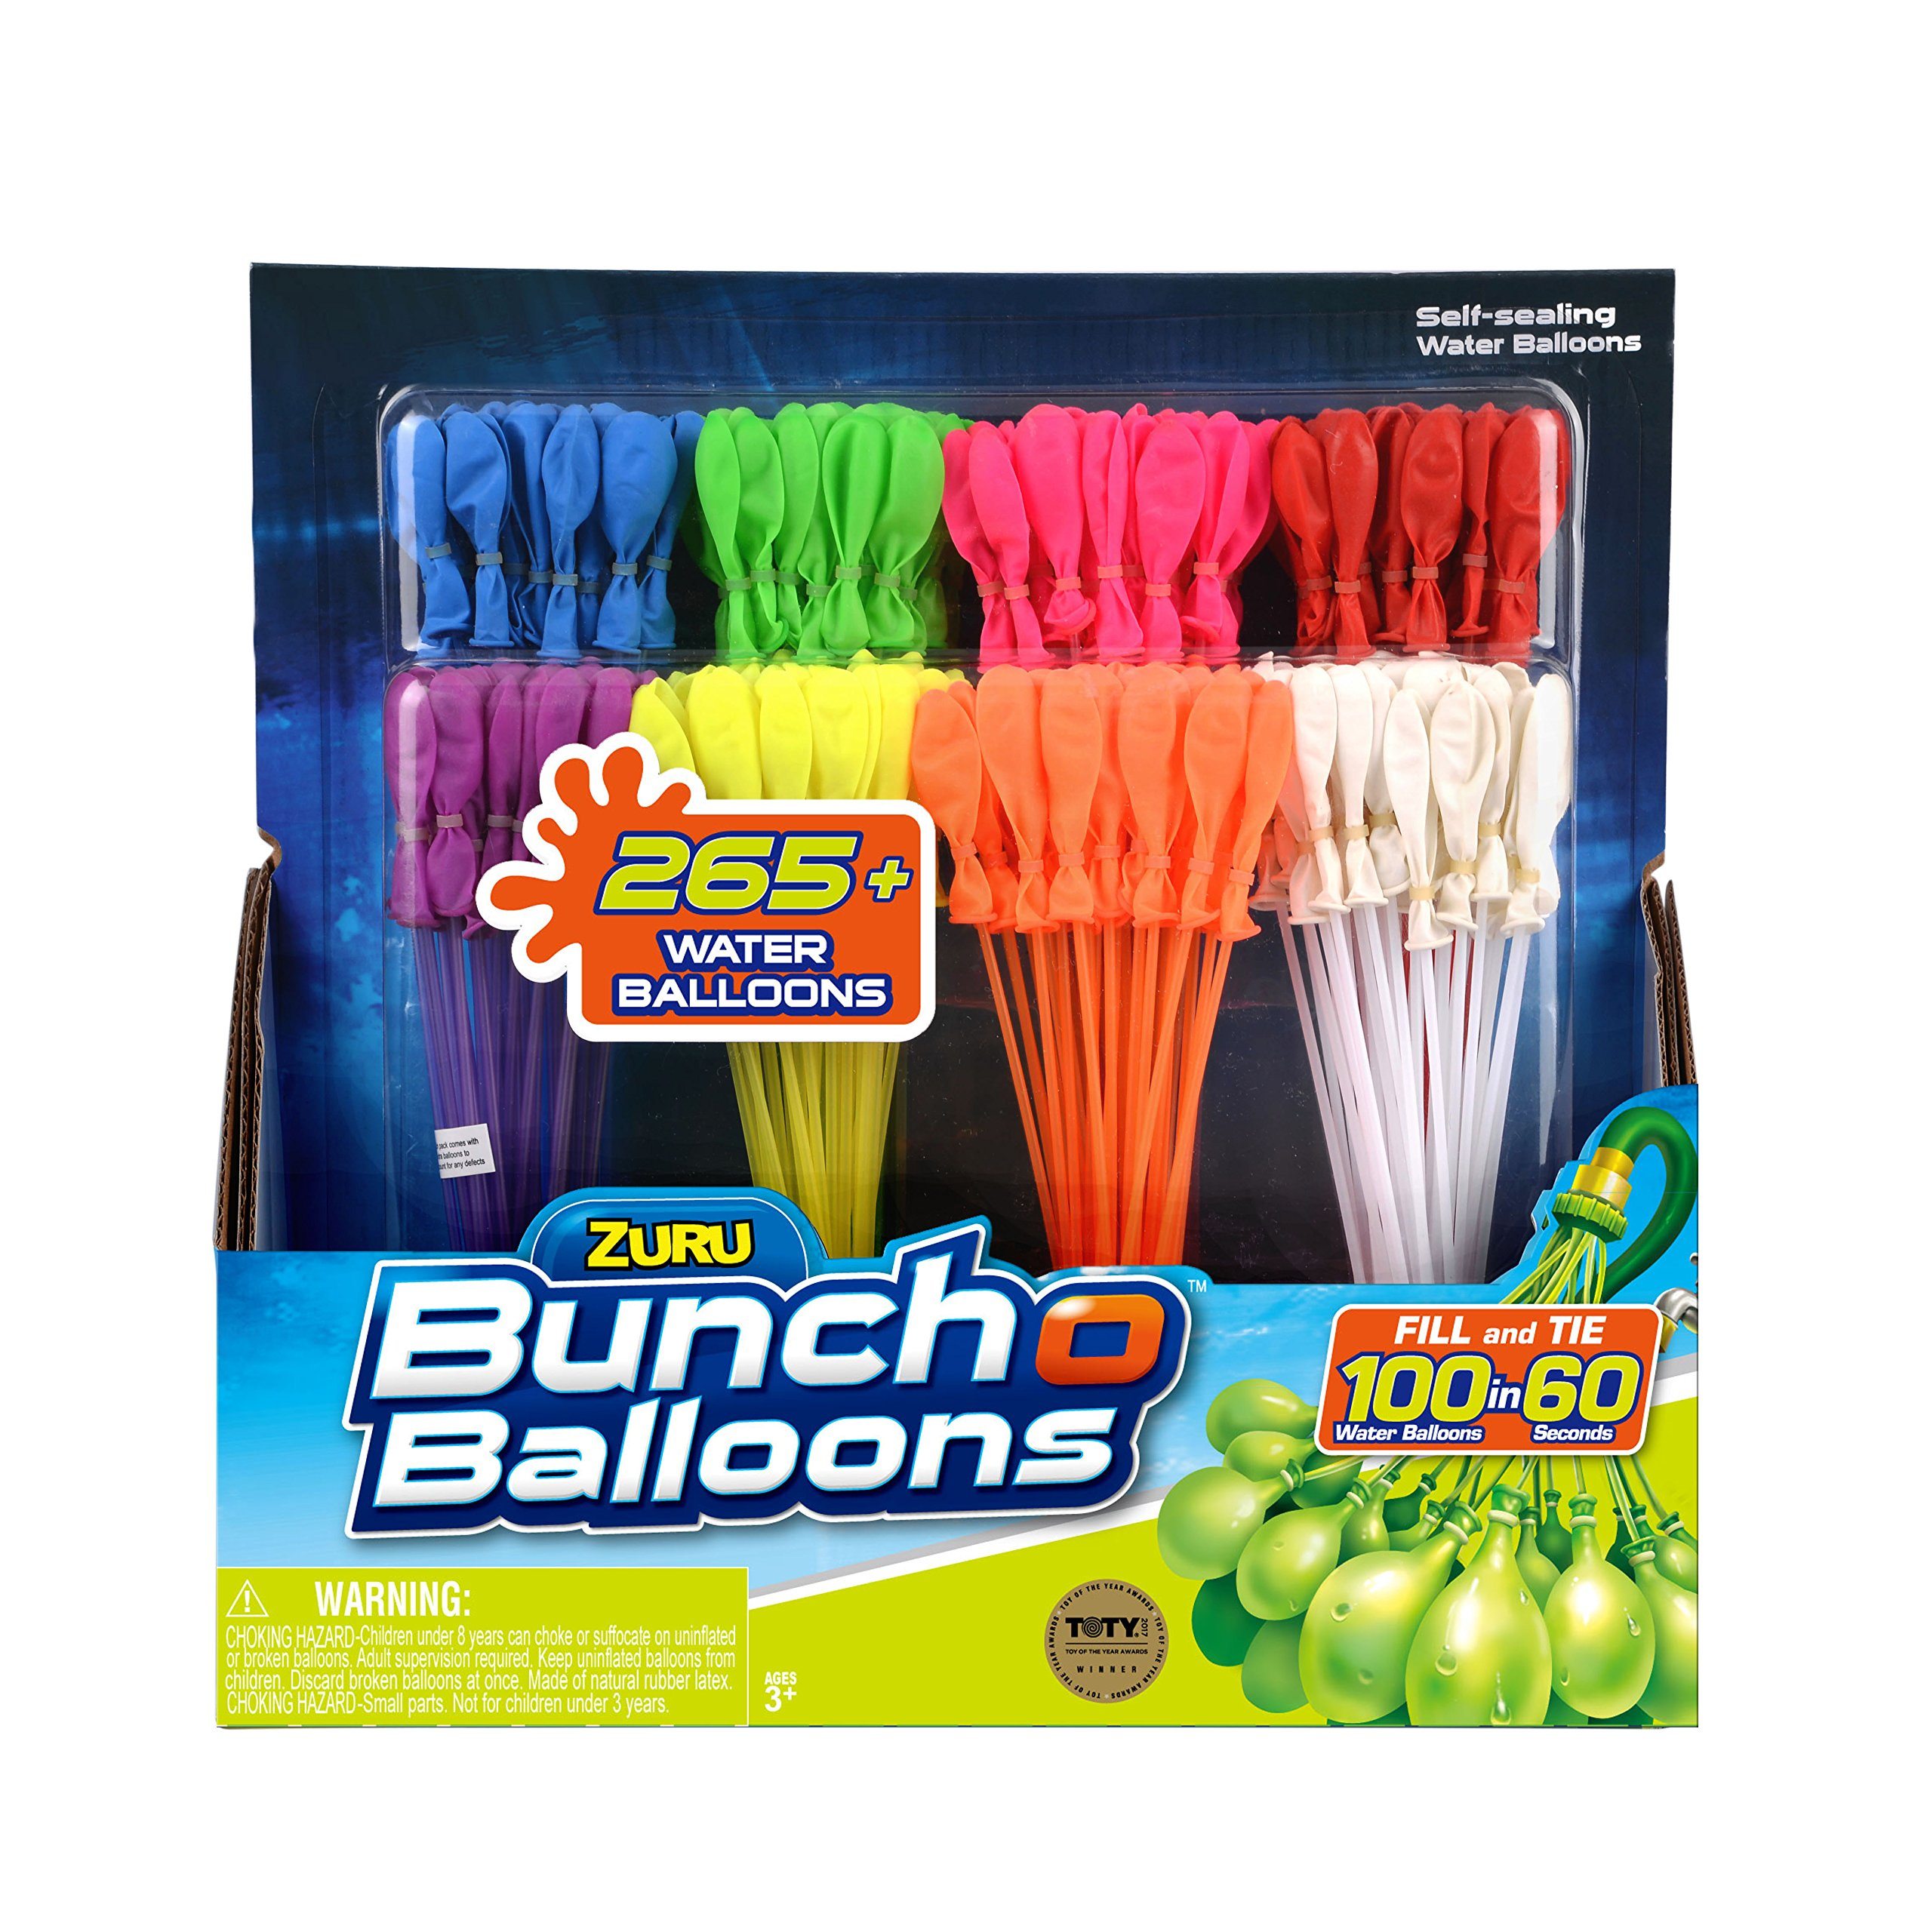 Bunch O Balloons WATER BALLOONS - BUNCH OF BALLOONS RAPID REFILL 8 PACK by Bunch O Balloons